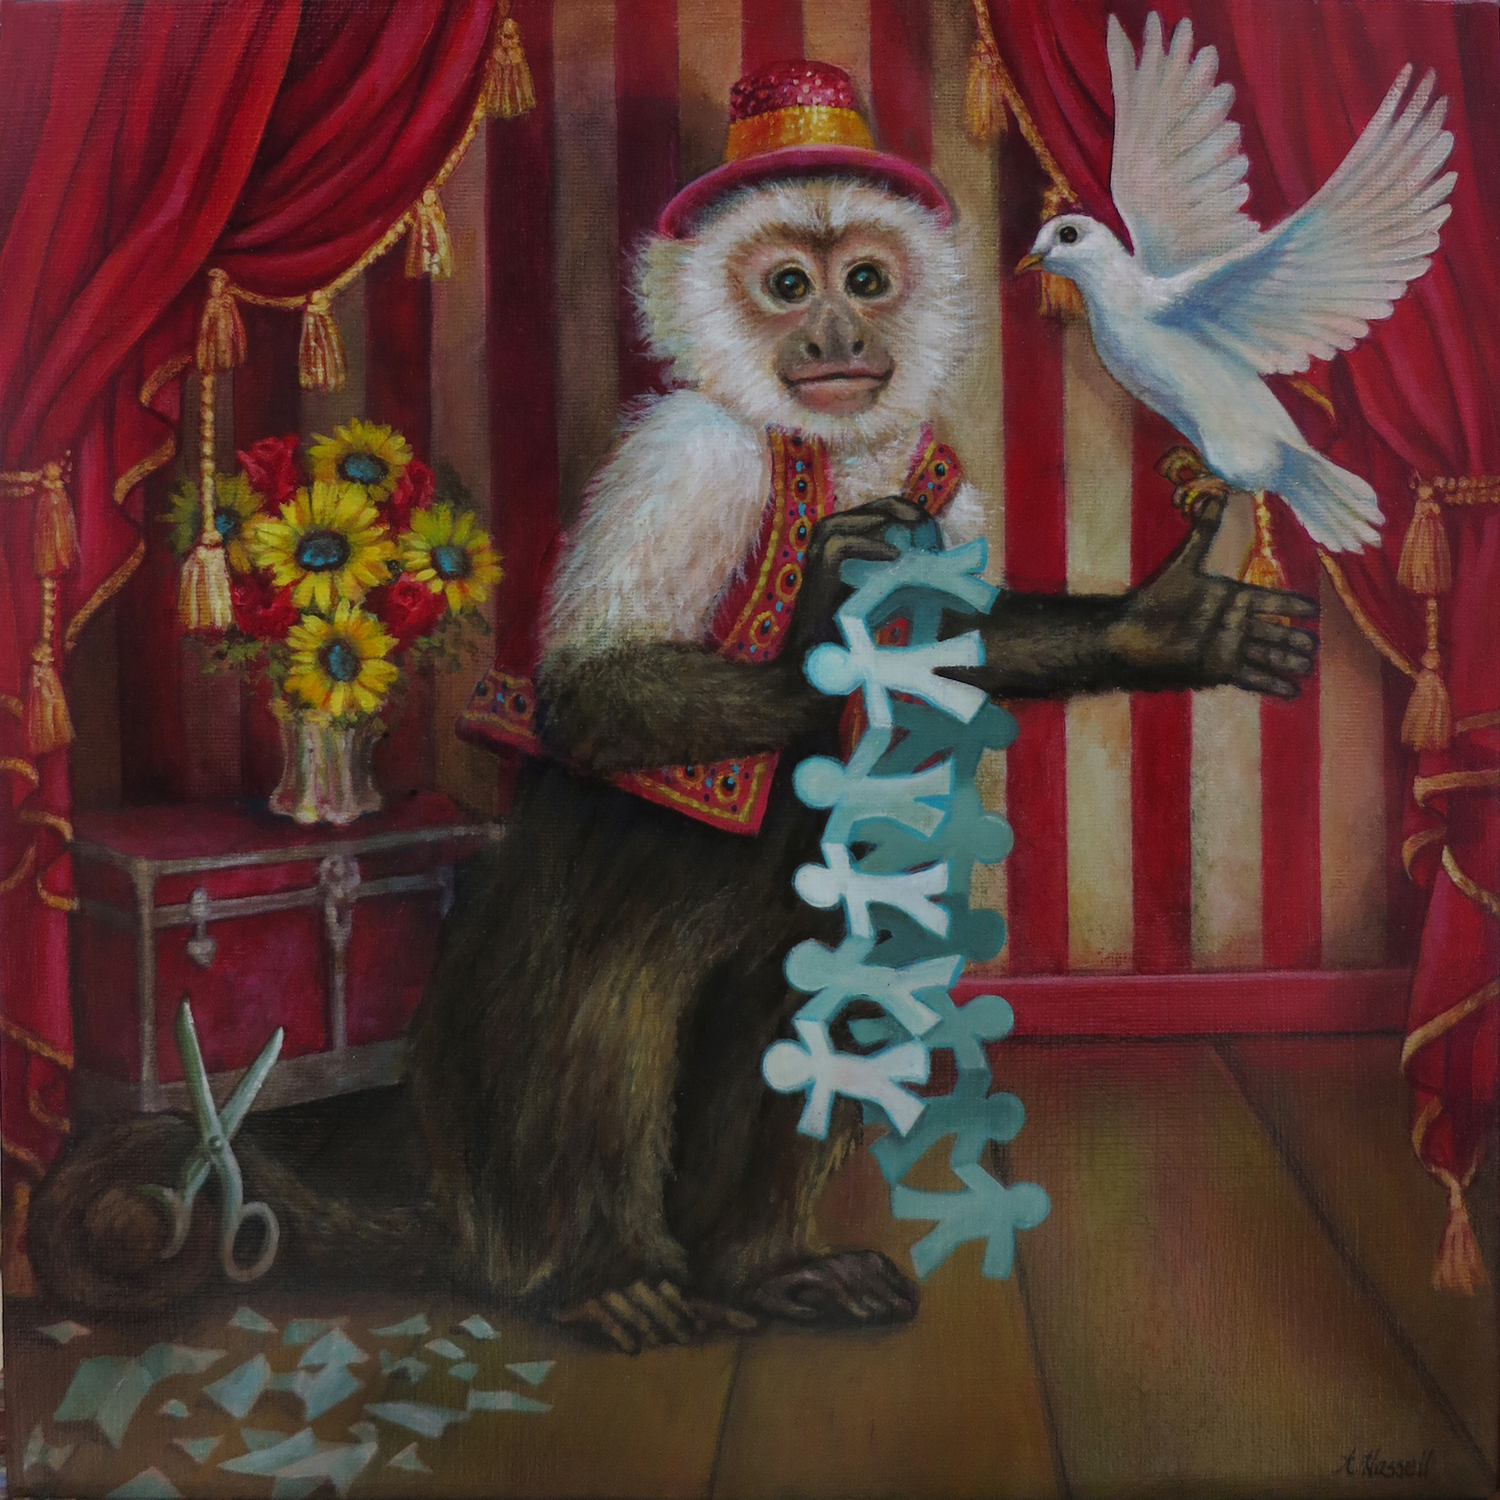 A Magician Artwork by Annette Hassell